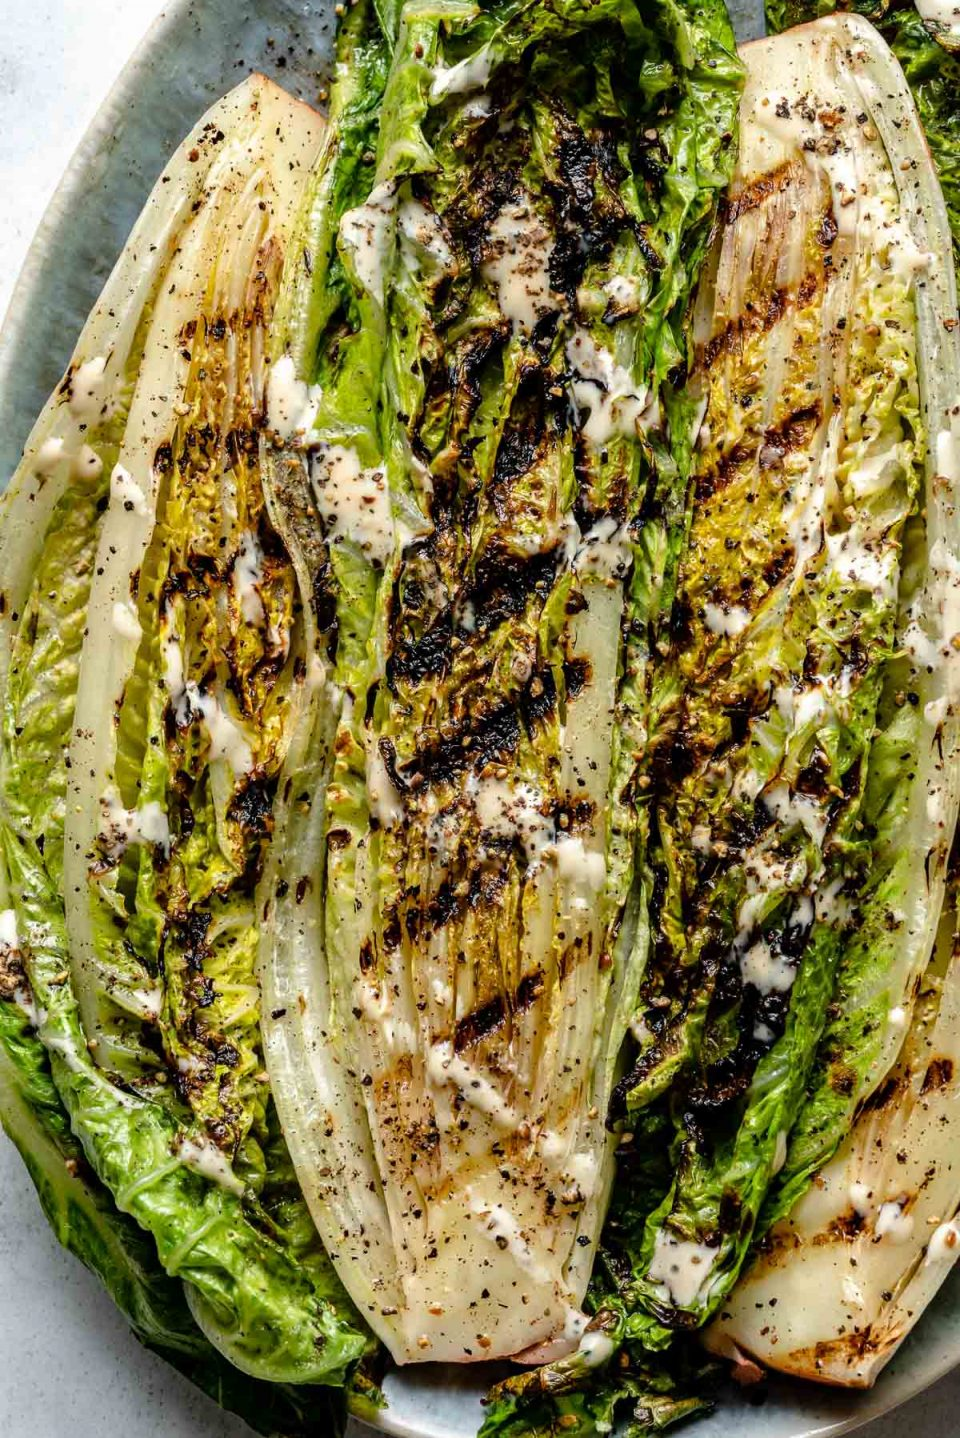 Close up of grilled lettuce with char marks. Garnished with ground black pepper & a light drizzle of sauce.